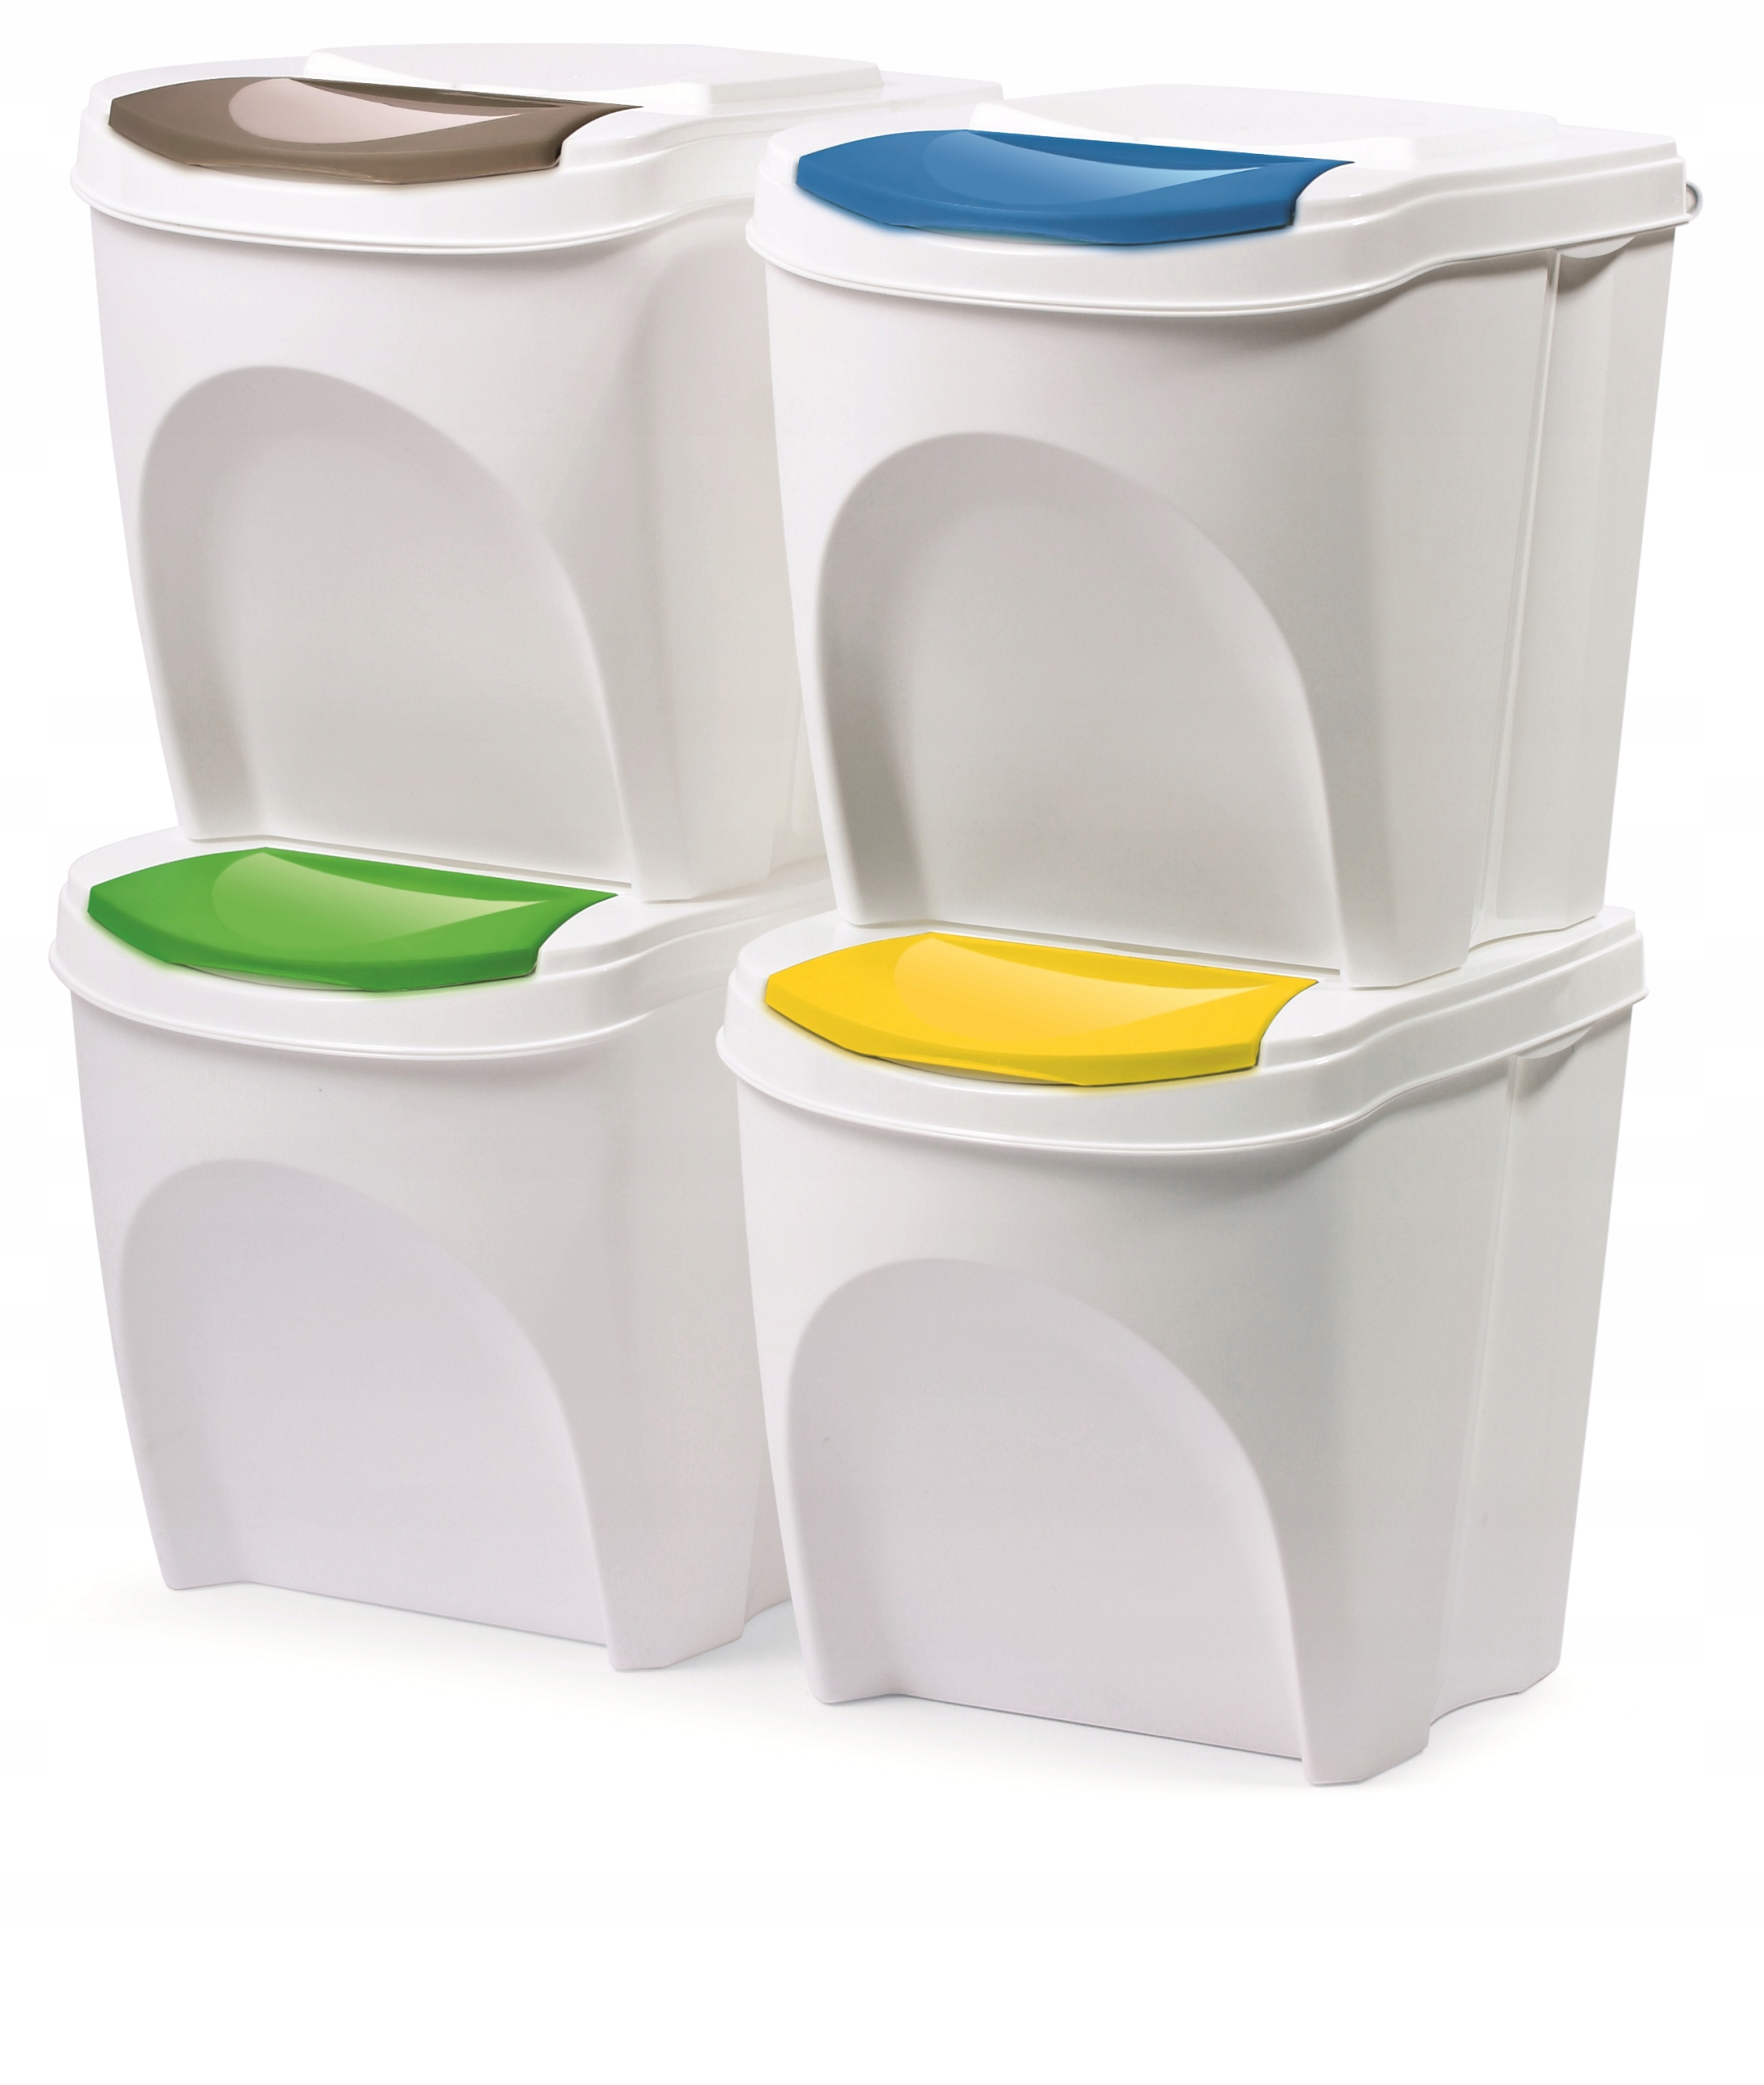 Item Set of 4x TRASH for segregation of garbage 4x20l